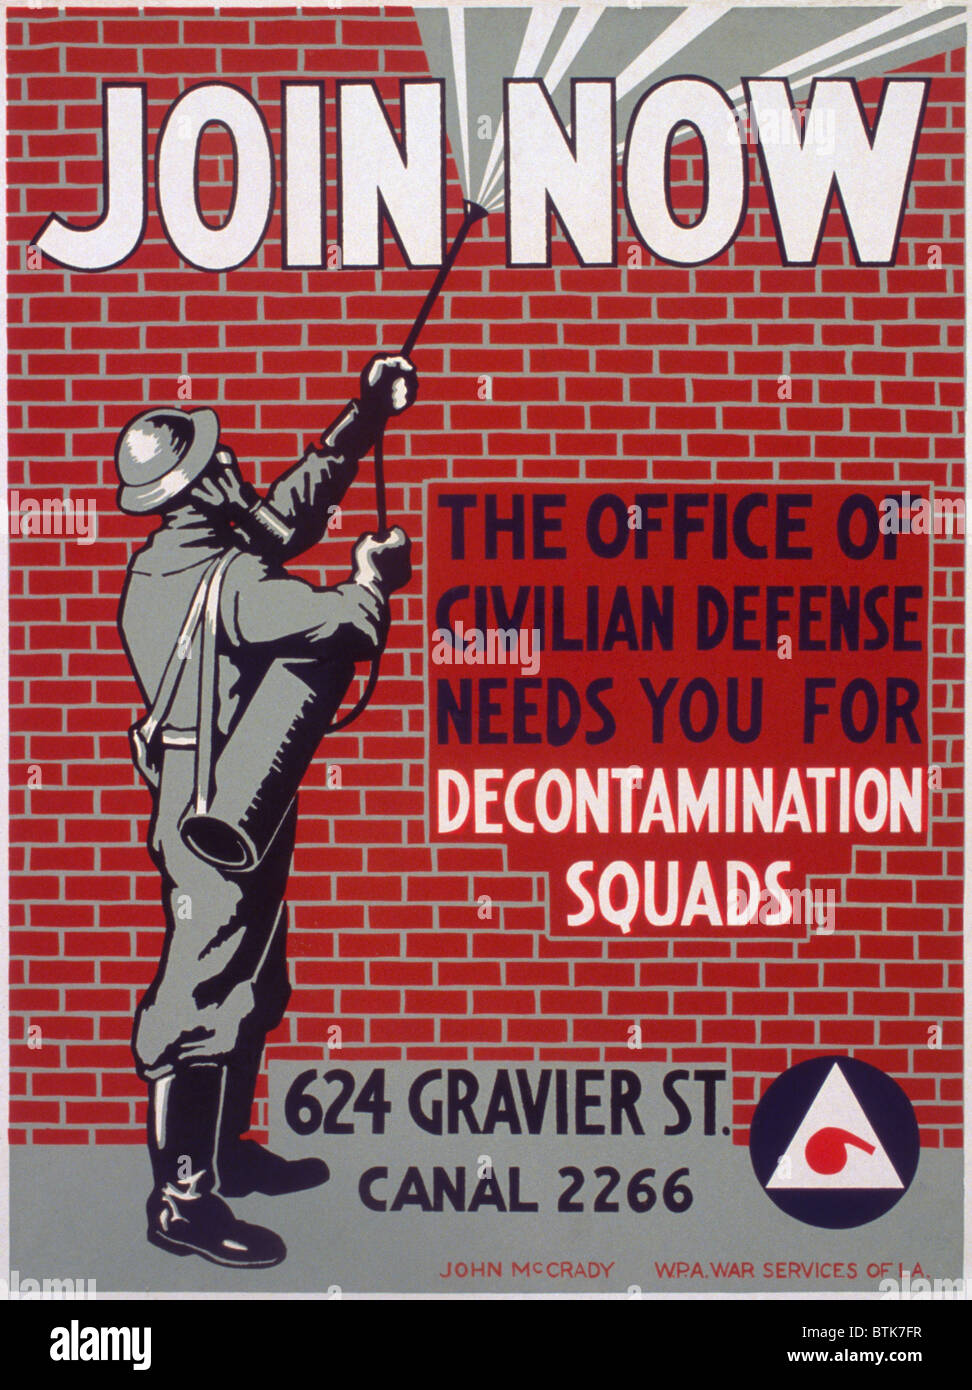 the office poster. \u0027Join Now The Office Of Civilian Defense Needs You For Decontamination Squads\u0027 Color Poster, 1941 Poster